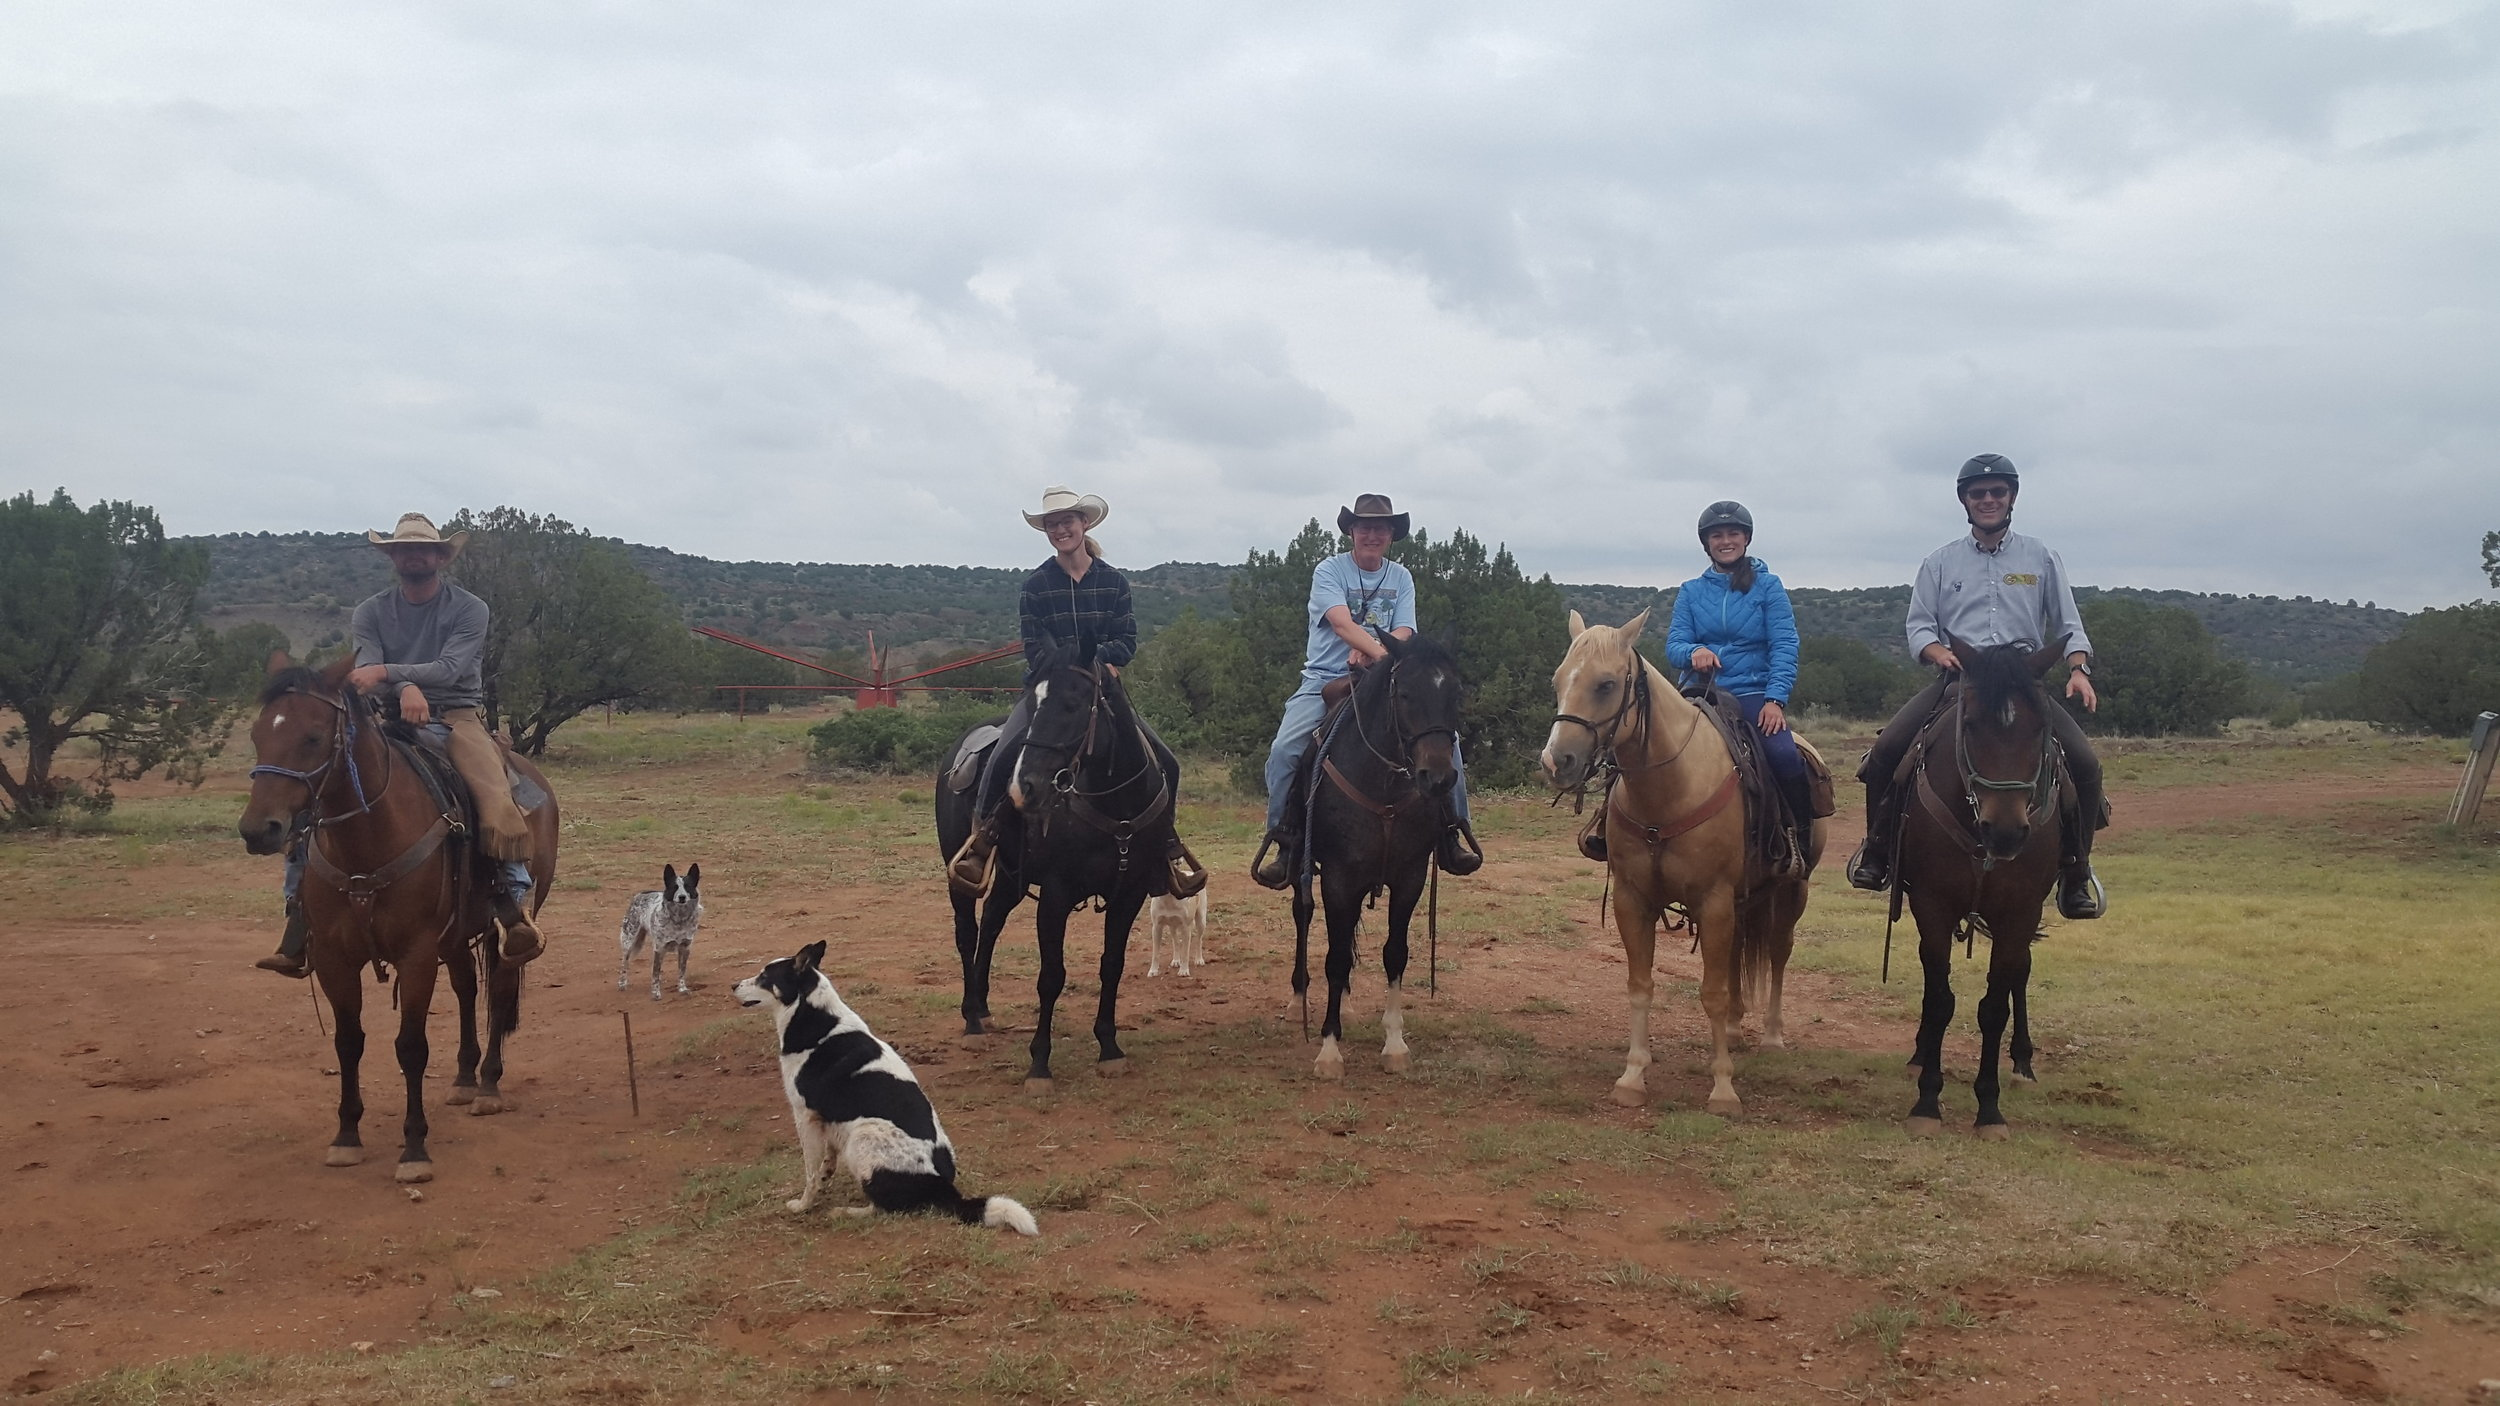 Every once in a while it happens: A cloudy day in September. The riders about to head out on the trail (left to right): Rob on Cooter, Leonie on Harry, Stu on Ricky, Lina on Johnny and Holger on Hank.  Ganz ab und zu passiert es: Ein bewölkter Tag im September. Die Reiter kurz vor dem Ausritt (links nach rechts): Rob auf Cooter, Leonie auf Harry, Stu auf Ricky, Lina auf Johnny und Holger auf Hank.